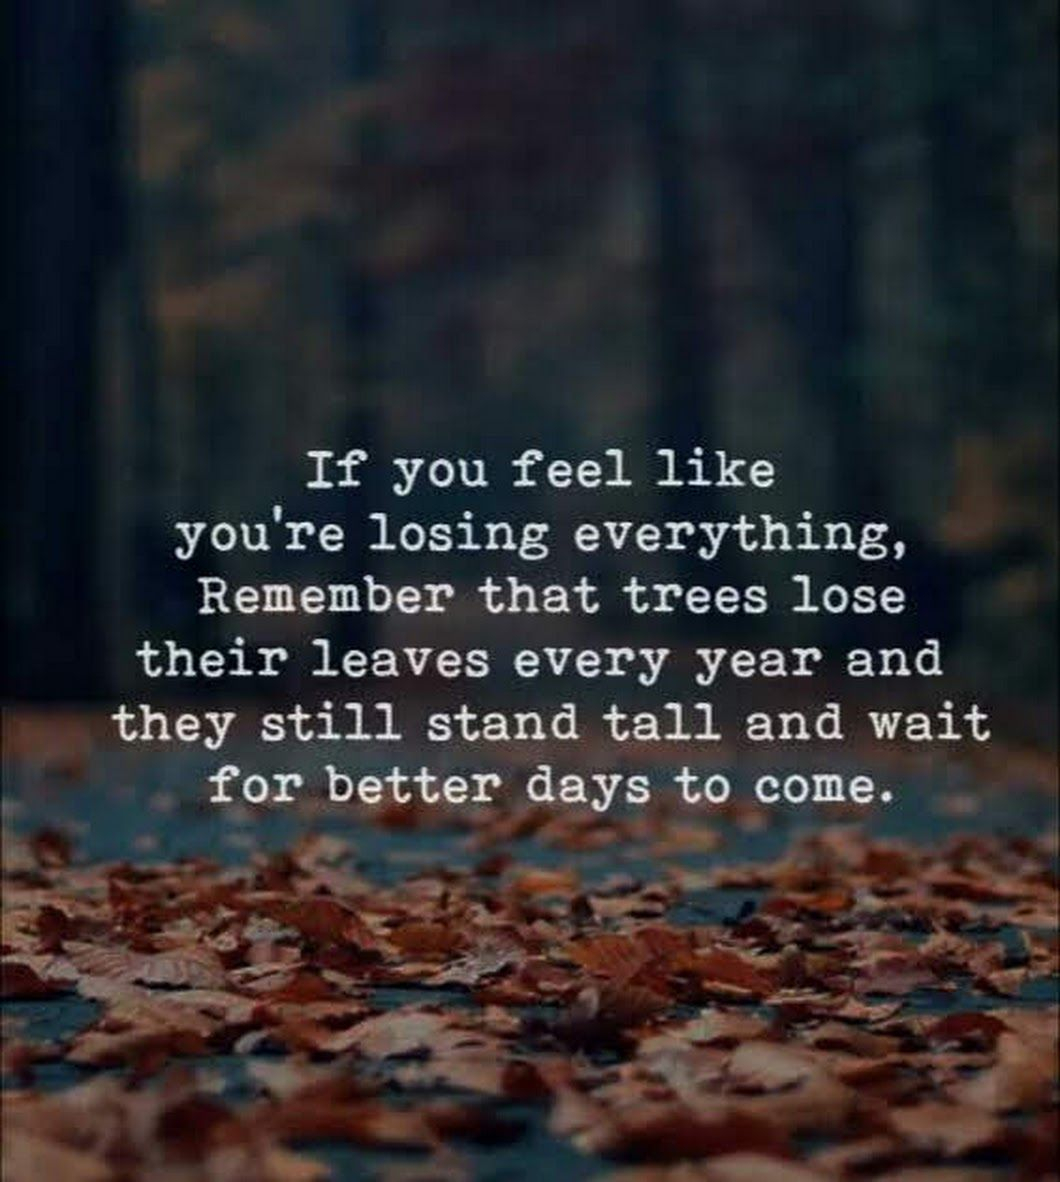 Wait For Better Days To Come Better Days Are Coming How Are You Feeling Quirky Quotes